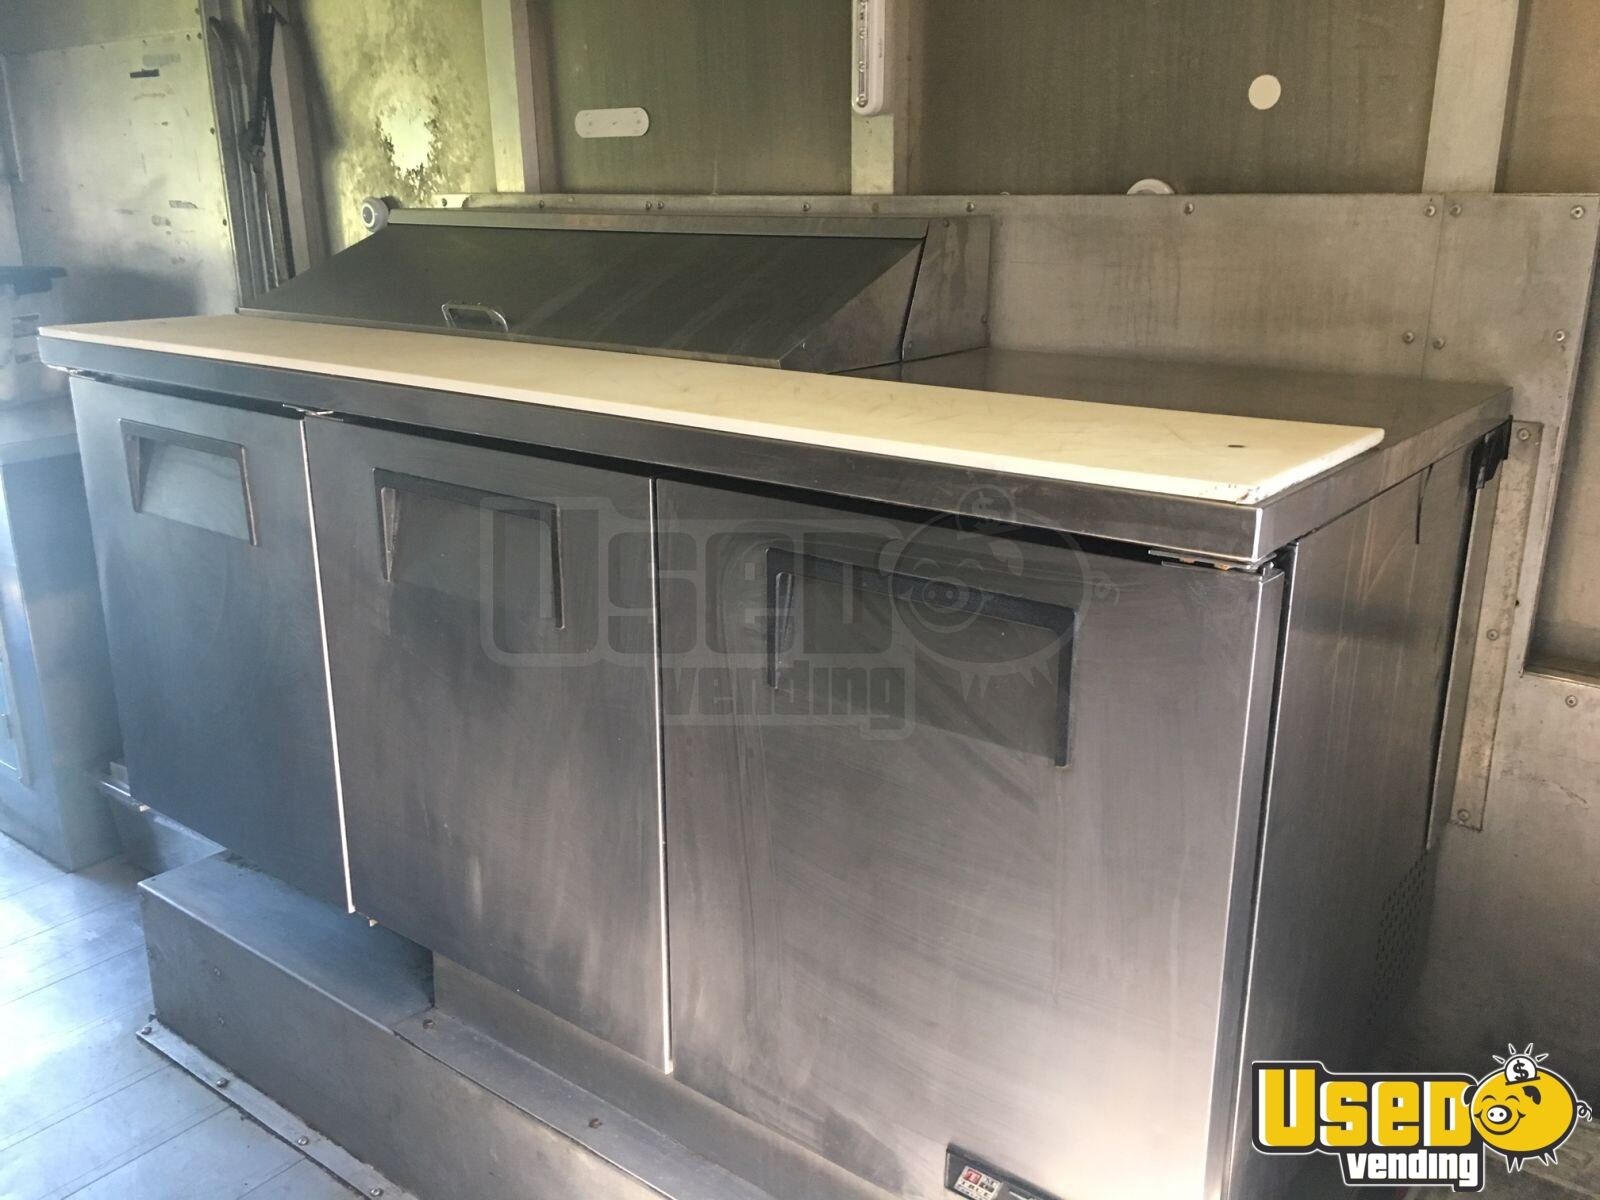 1999 P30 Kitchen Food Truck All-purpose Food Truck Awning Pennsylvania Gas Engine for Sale - 6